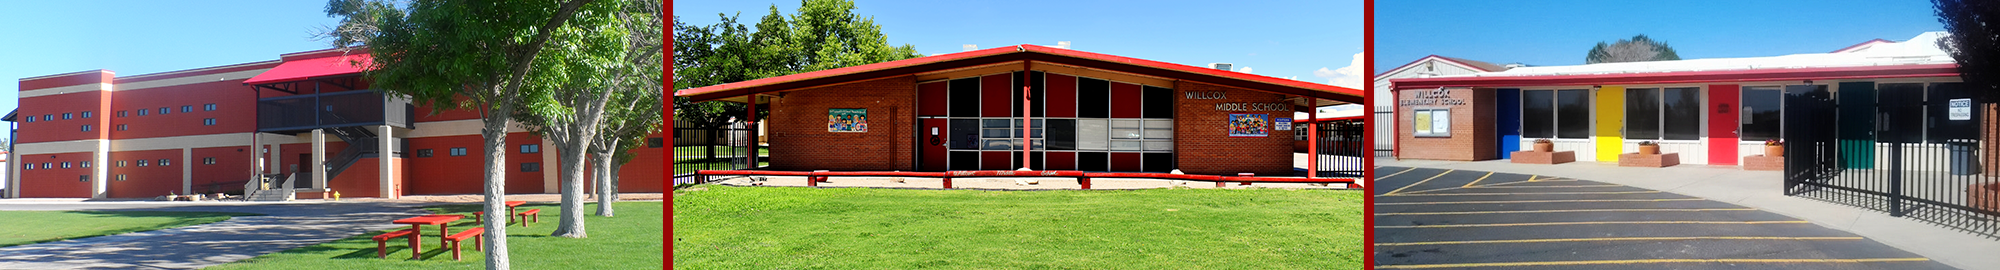 Willcox High School, Willcox Middle School, Willcox Elementary